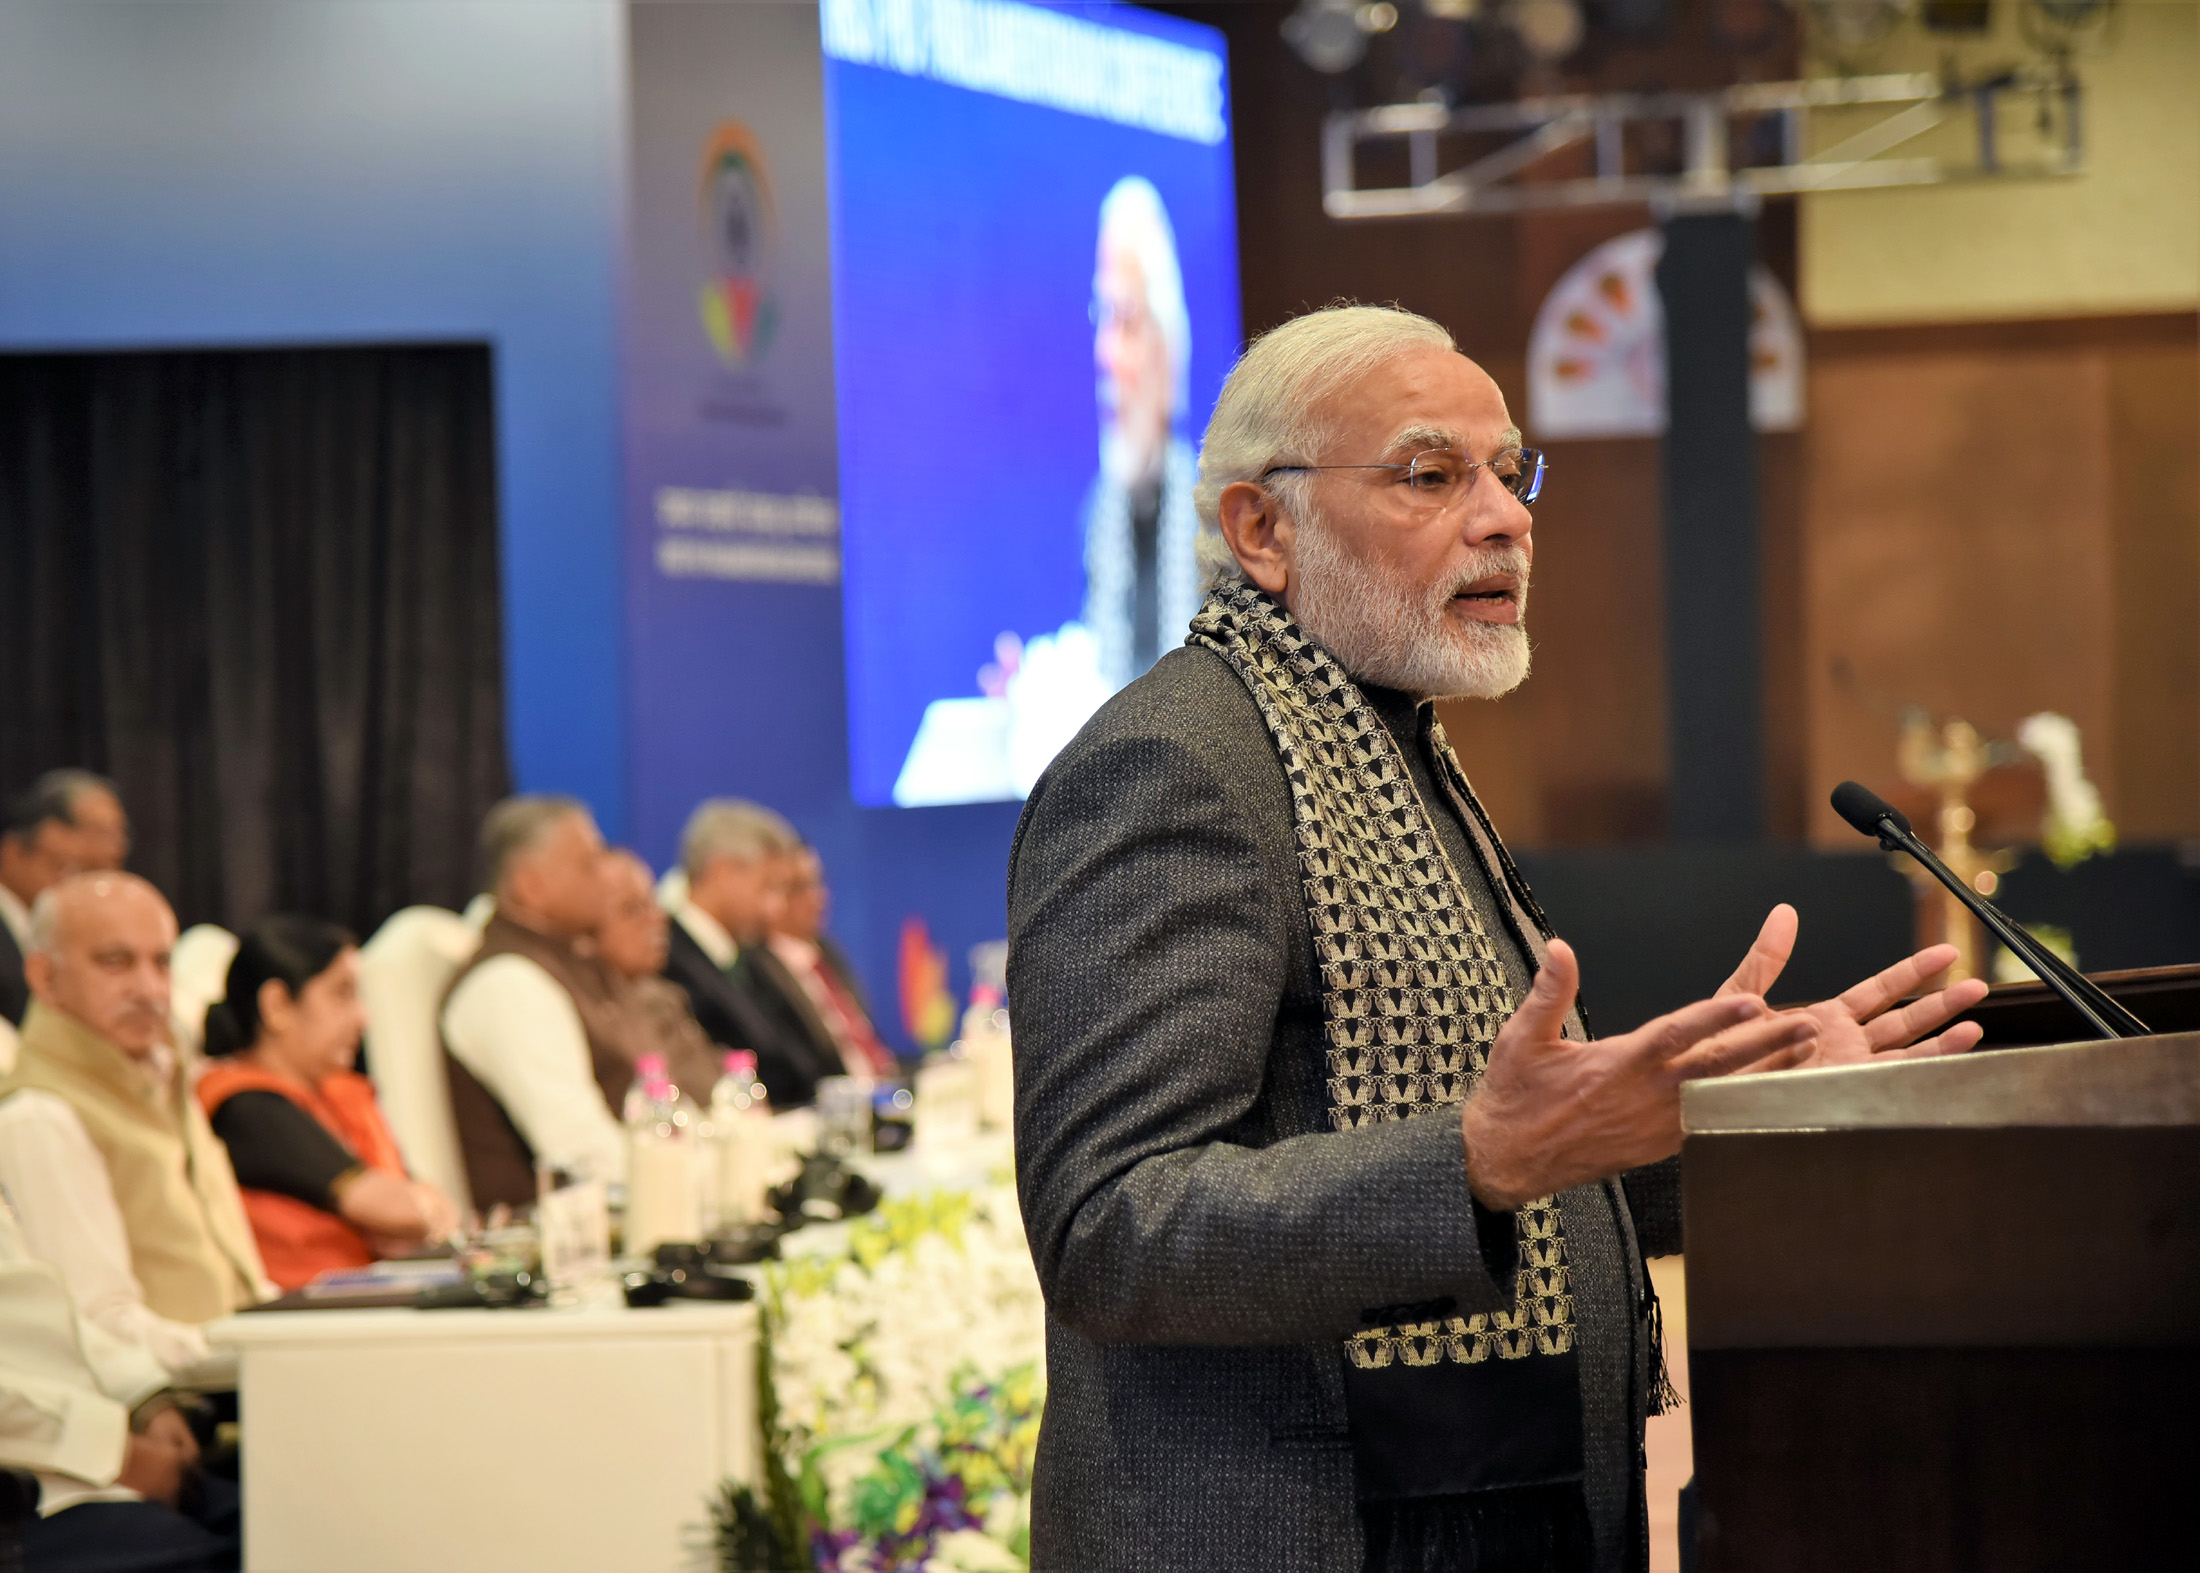 You are permanent ambassadors of India, Modi tells PIO parliamentarians